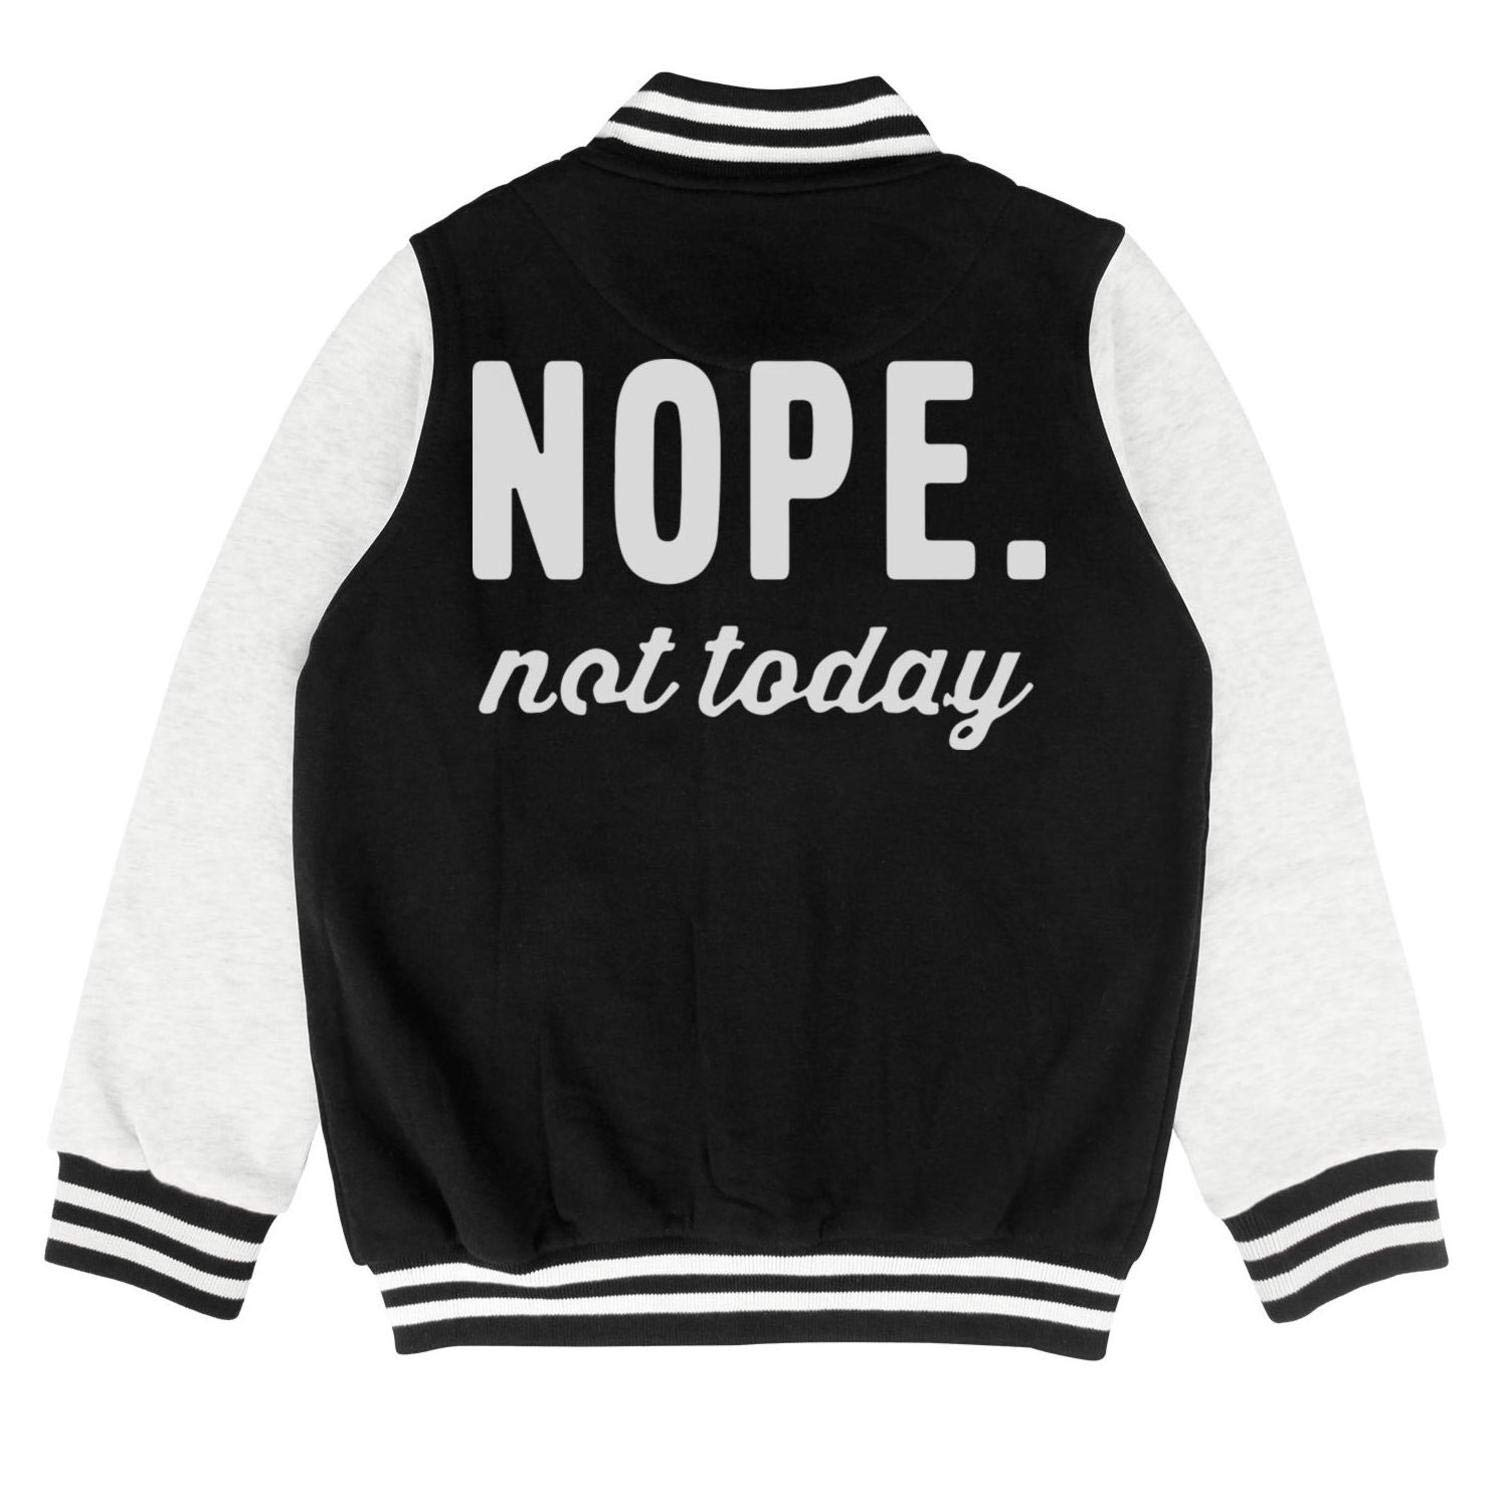 Kids There is No Cloud Teen Girls Tops for Girls Boys Funny Cozy Coats